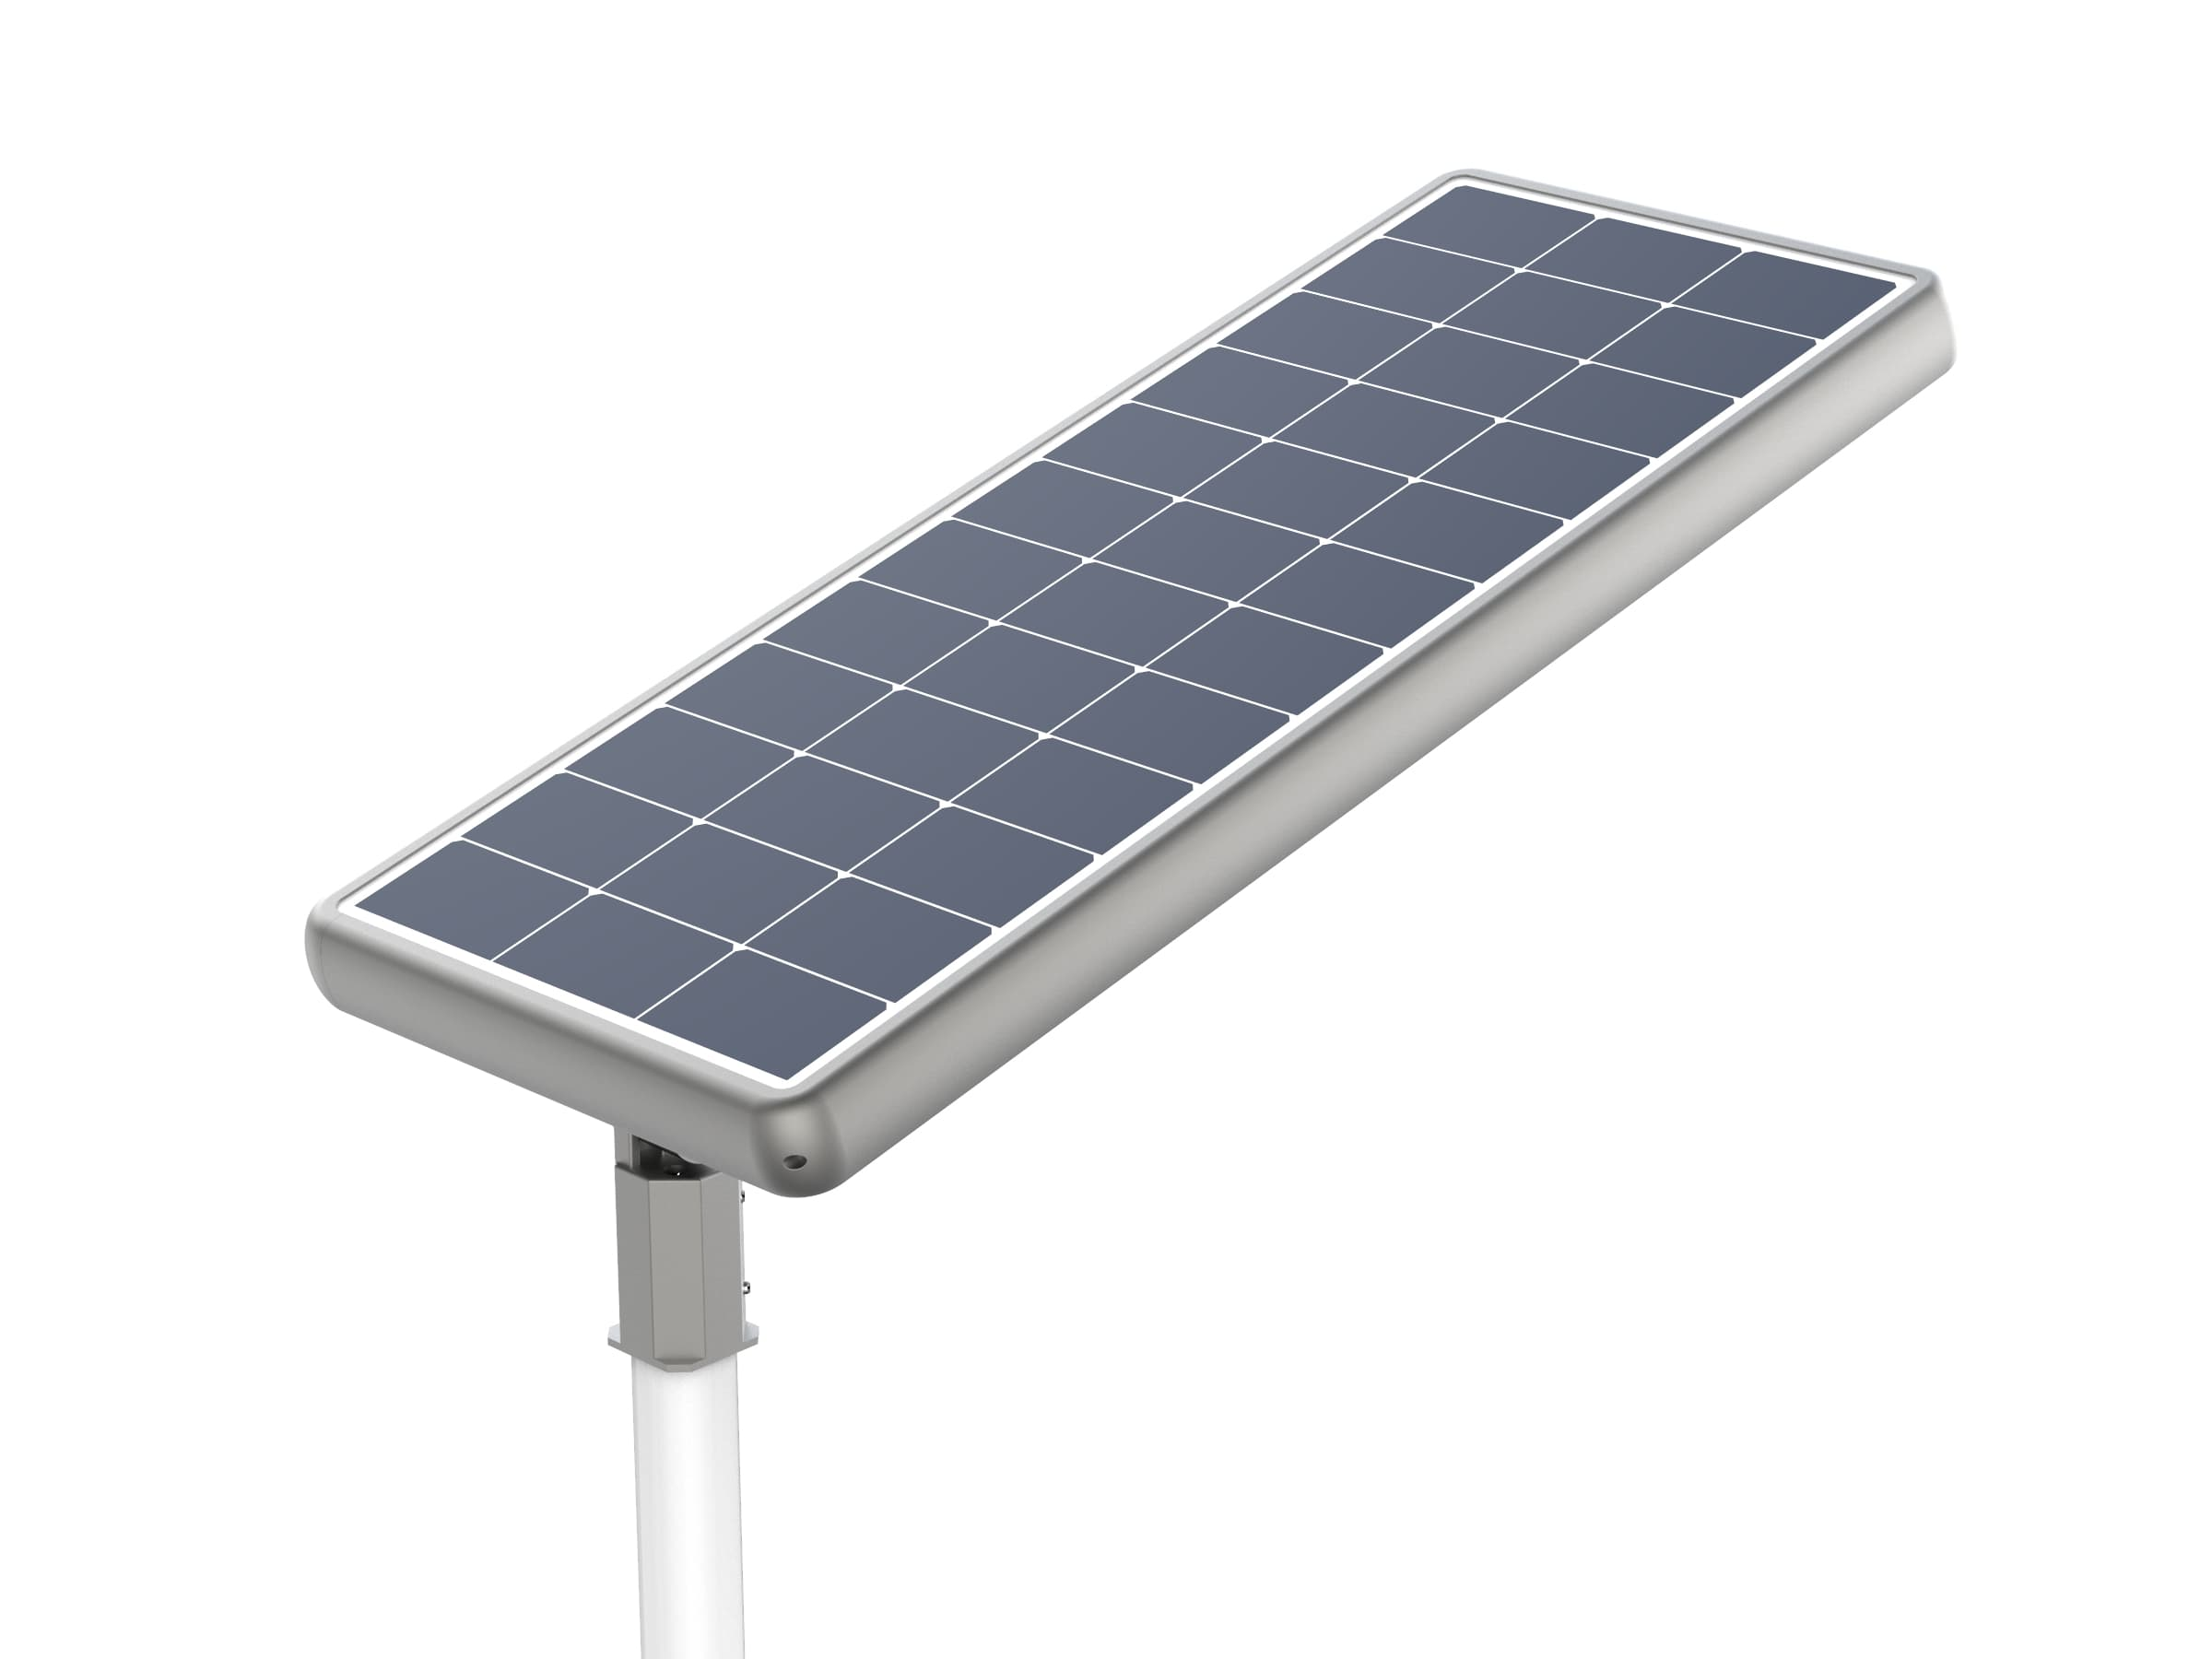 All-in-one solar street light credible hybrid and mppt solution 20 to 60 watts